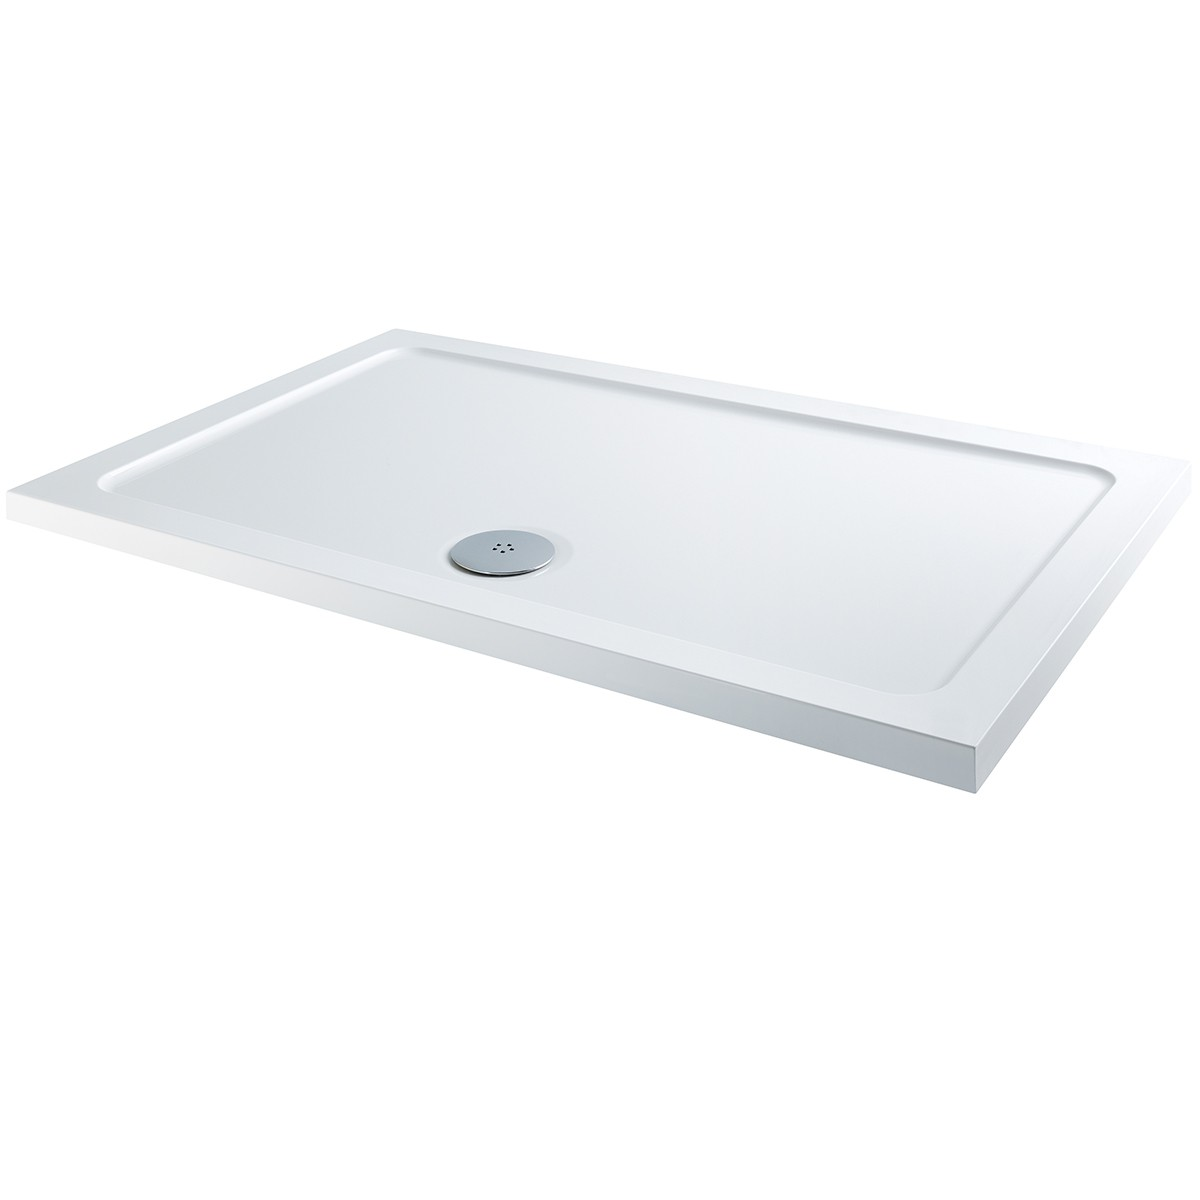 K-Vit 1200 x 900mm Rectangle L/P Shower Tray (c/w Fast Flow Waste)